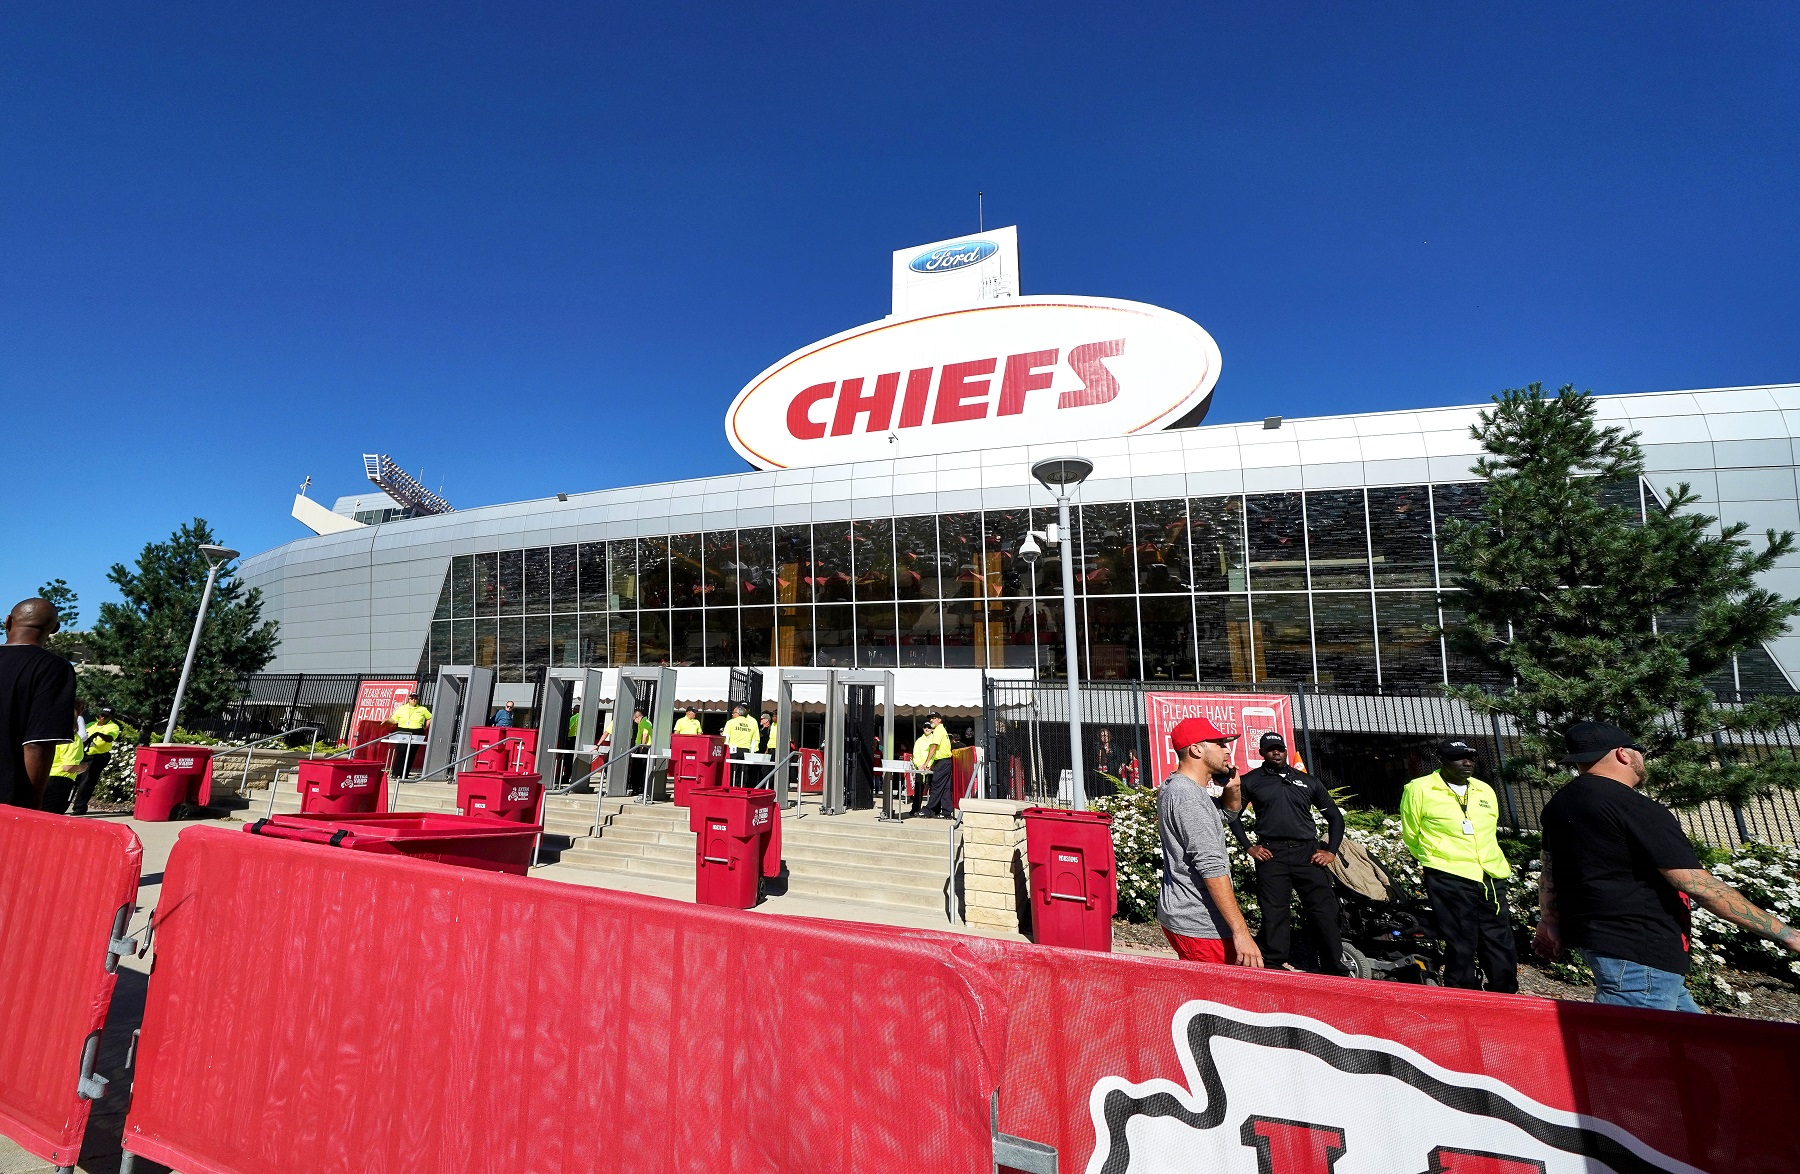 Loudest NFL stadiums: Kansas City Chiefs Arrowhead Stadium